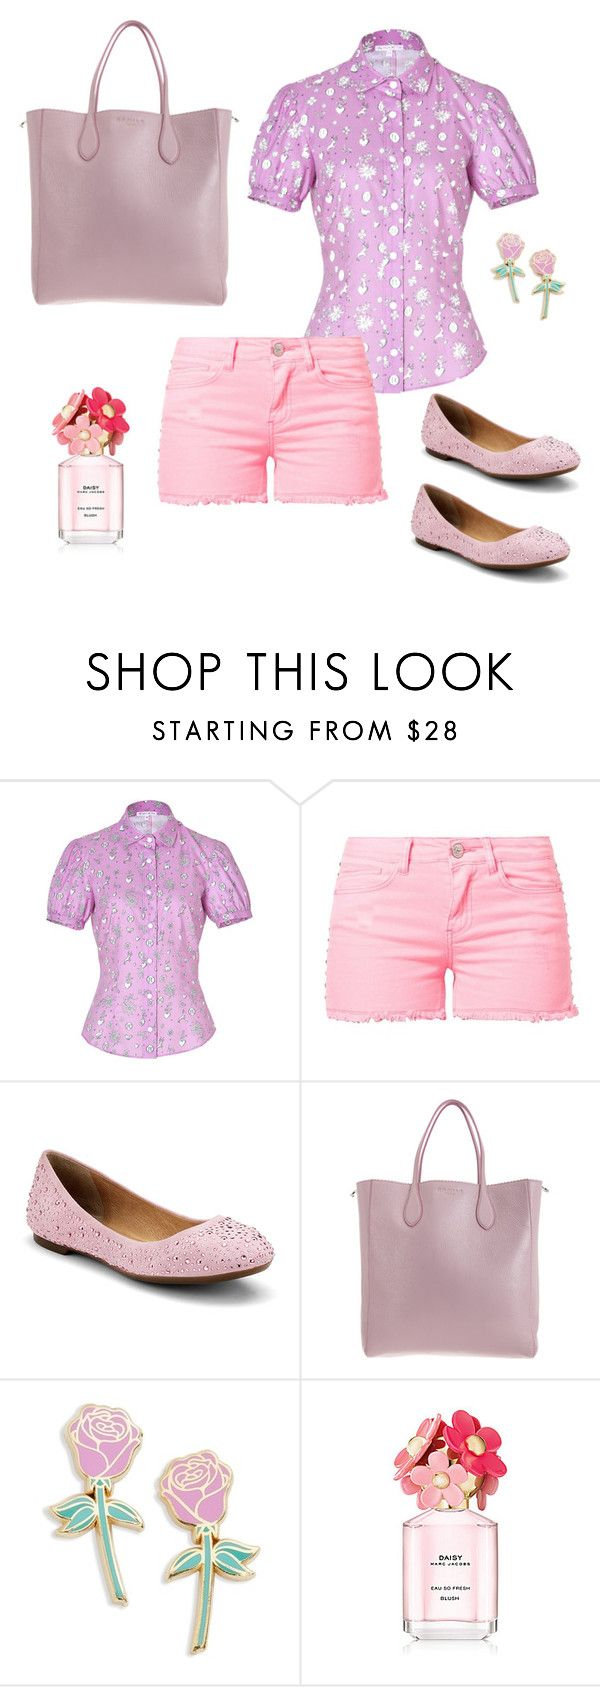 """""""Rosa Romantico"""" by carolortiz ❤ liked on Polyvore featuring Olympia Le-Tan, MKT studio, Sperry, Rochas and Big Bud Press"""